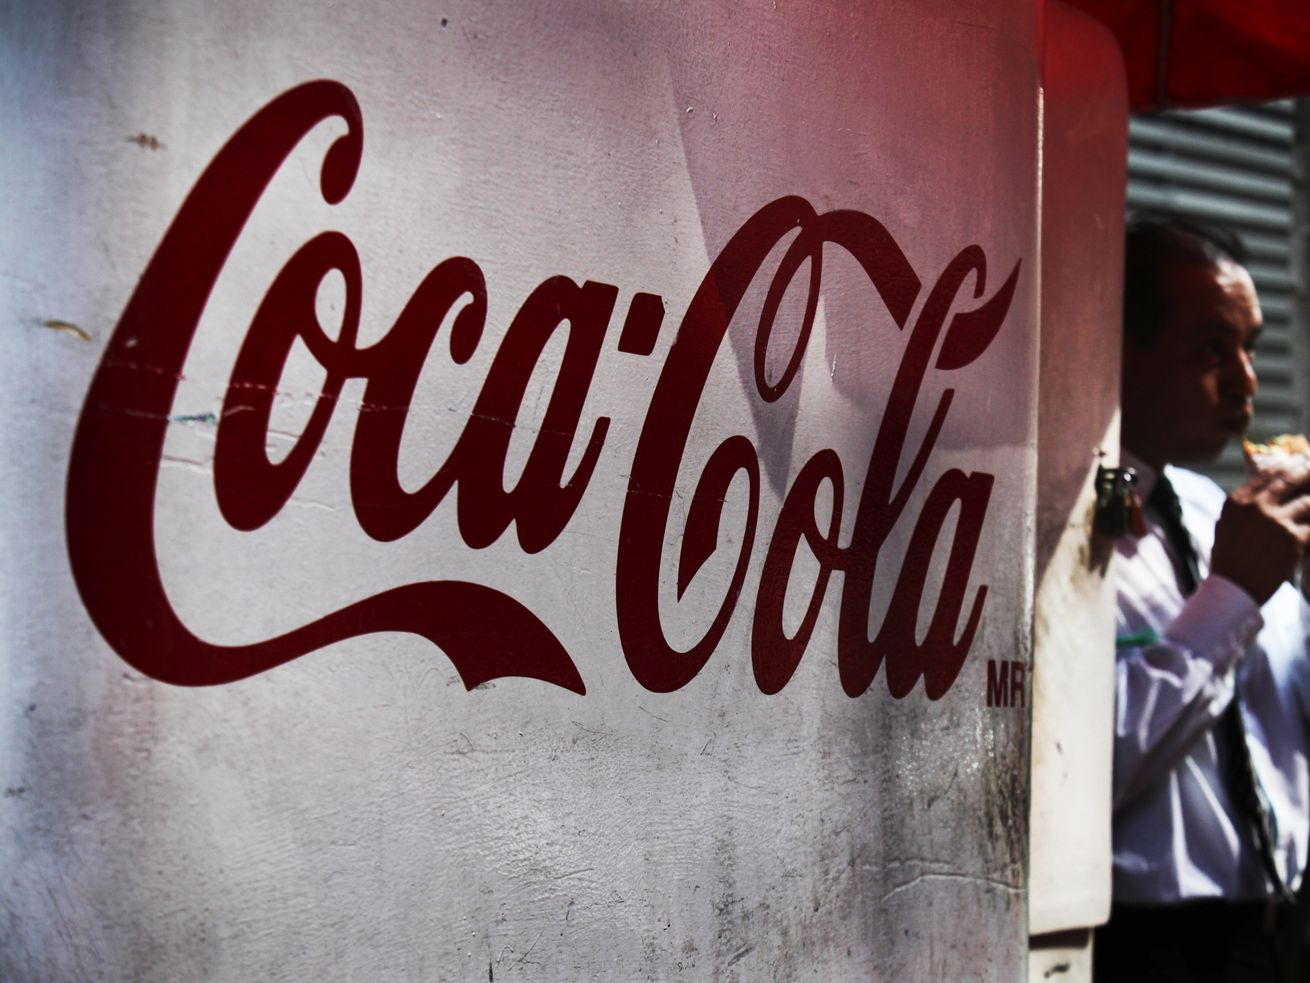 A man stands next to a Coca-Cola sign in Mexico City, on December 2, 2015.